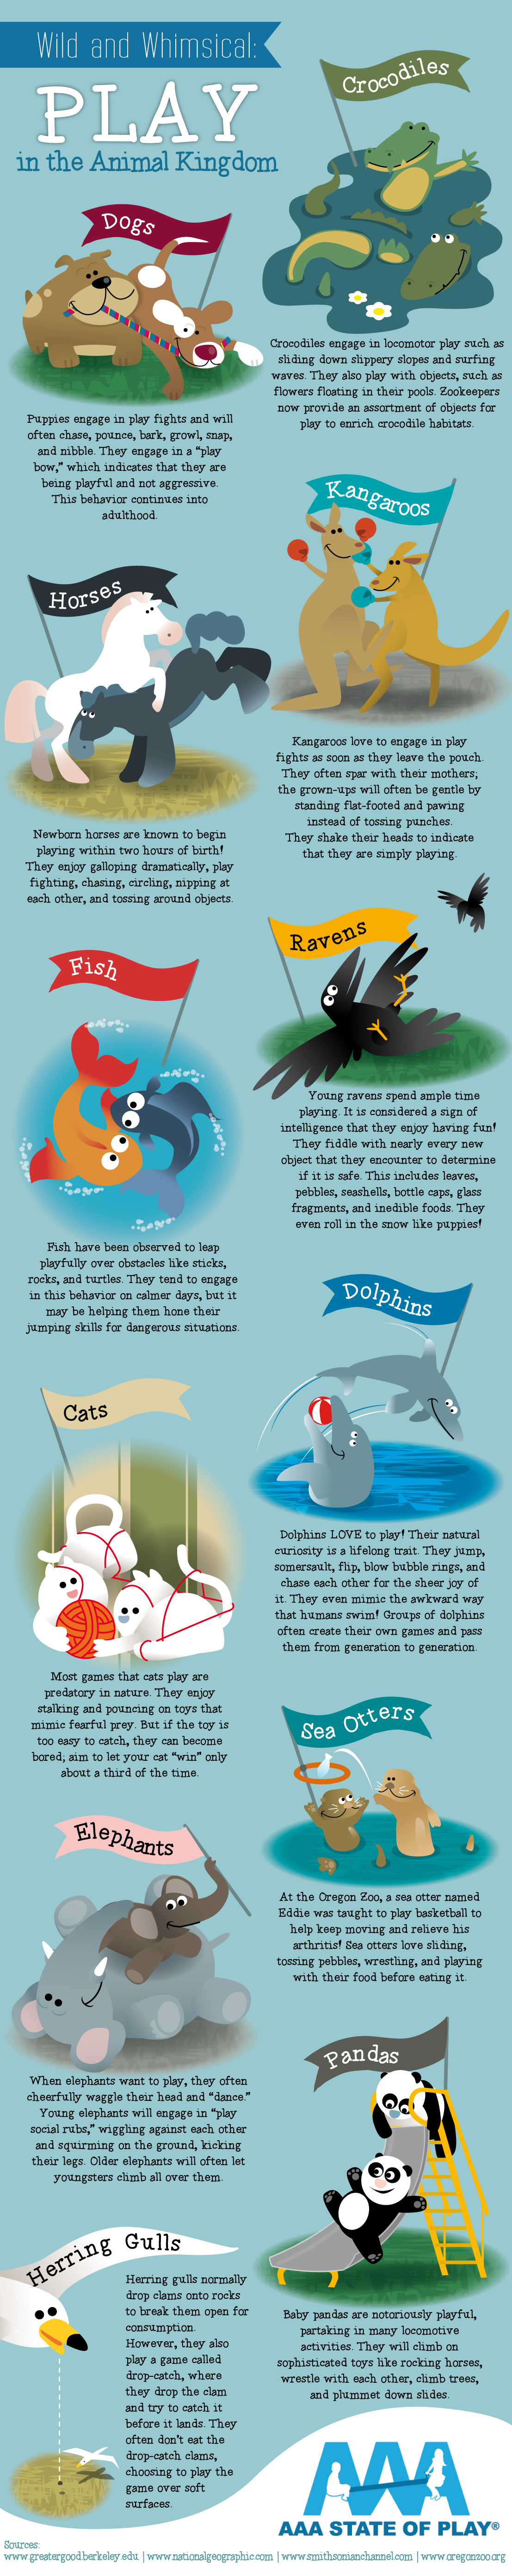 Wild and Whimsical: Play in the Animal Kingdom - AAAStateofPlay.com - Infographic